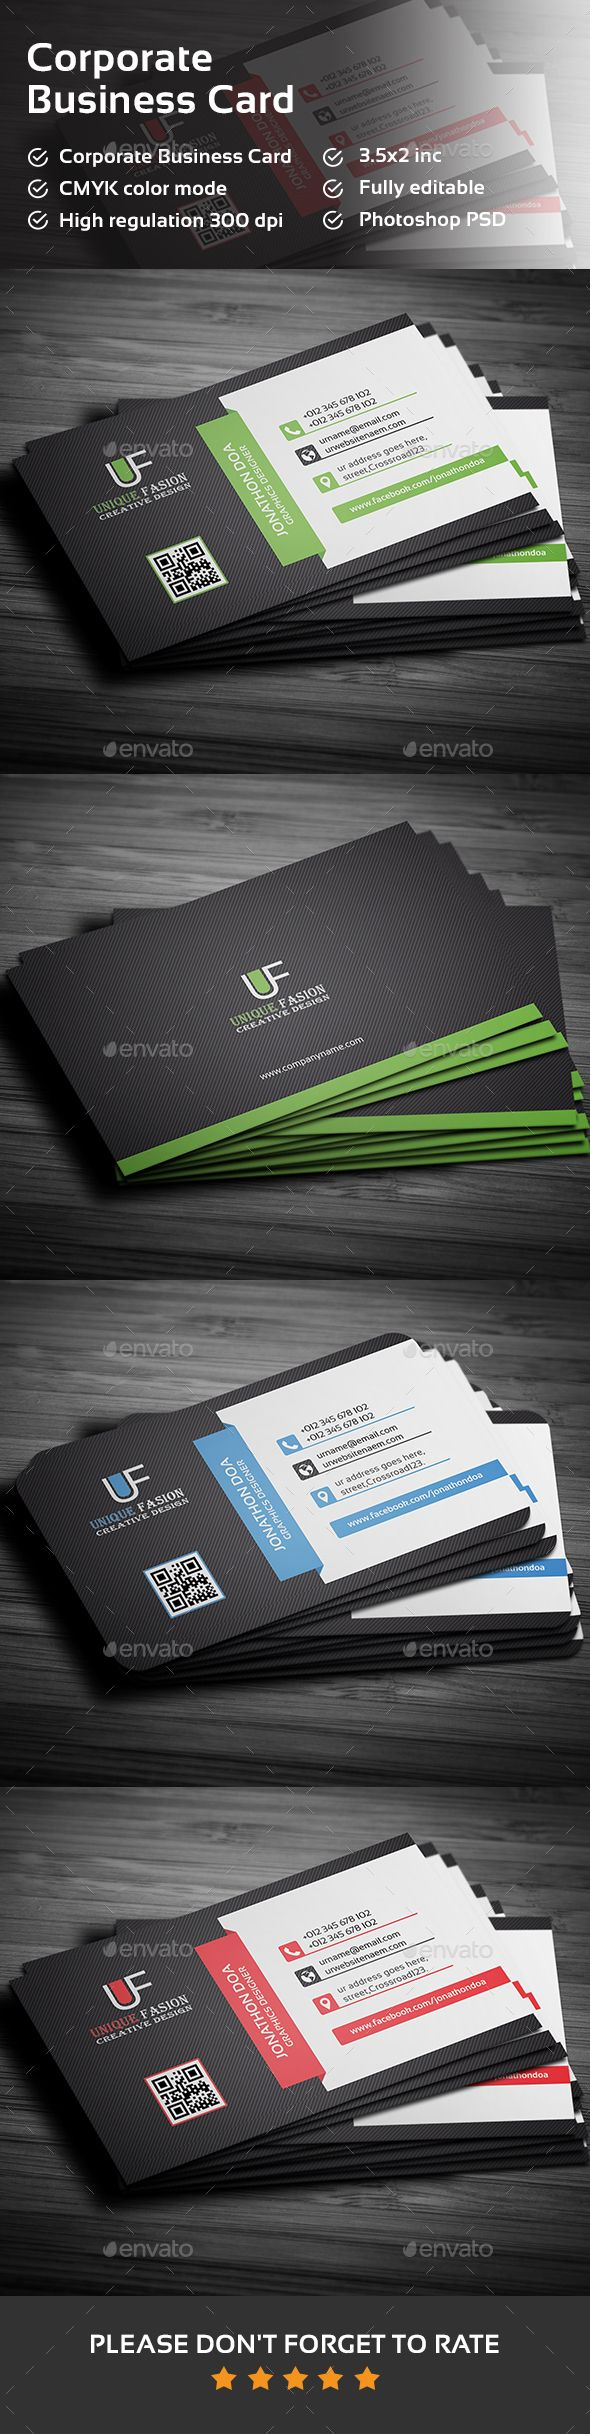 Business Card Card Templates Business Cards And Template - Buy business card template